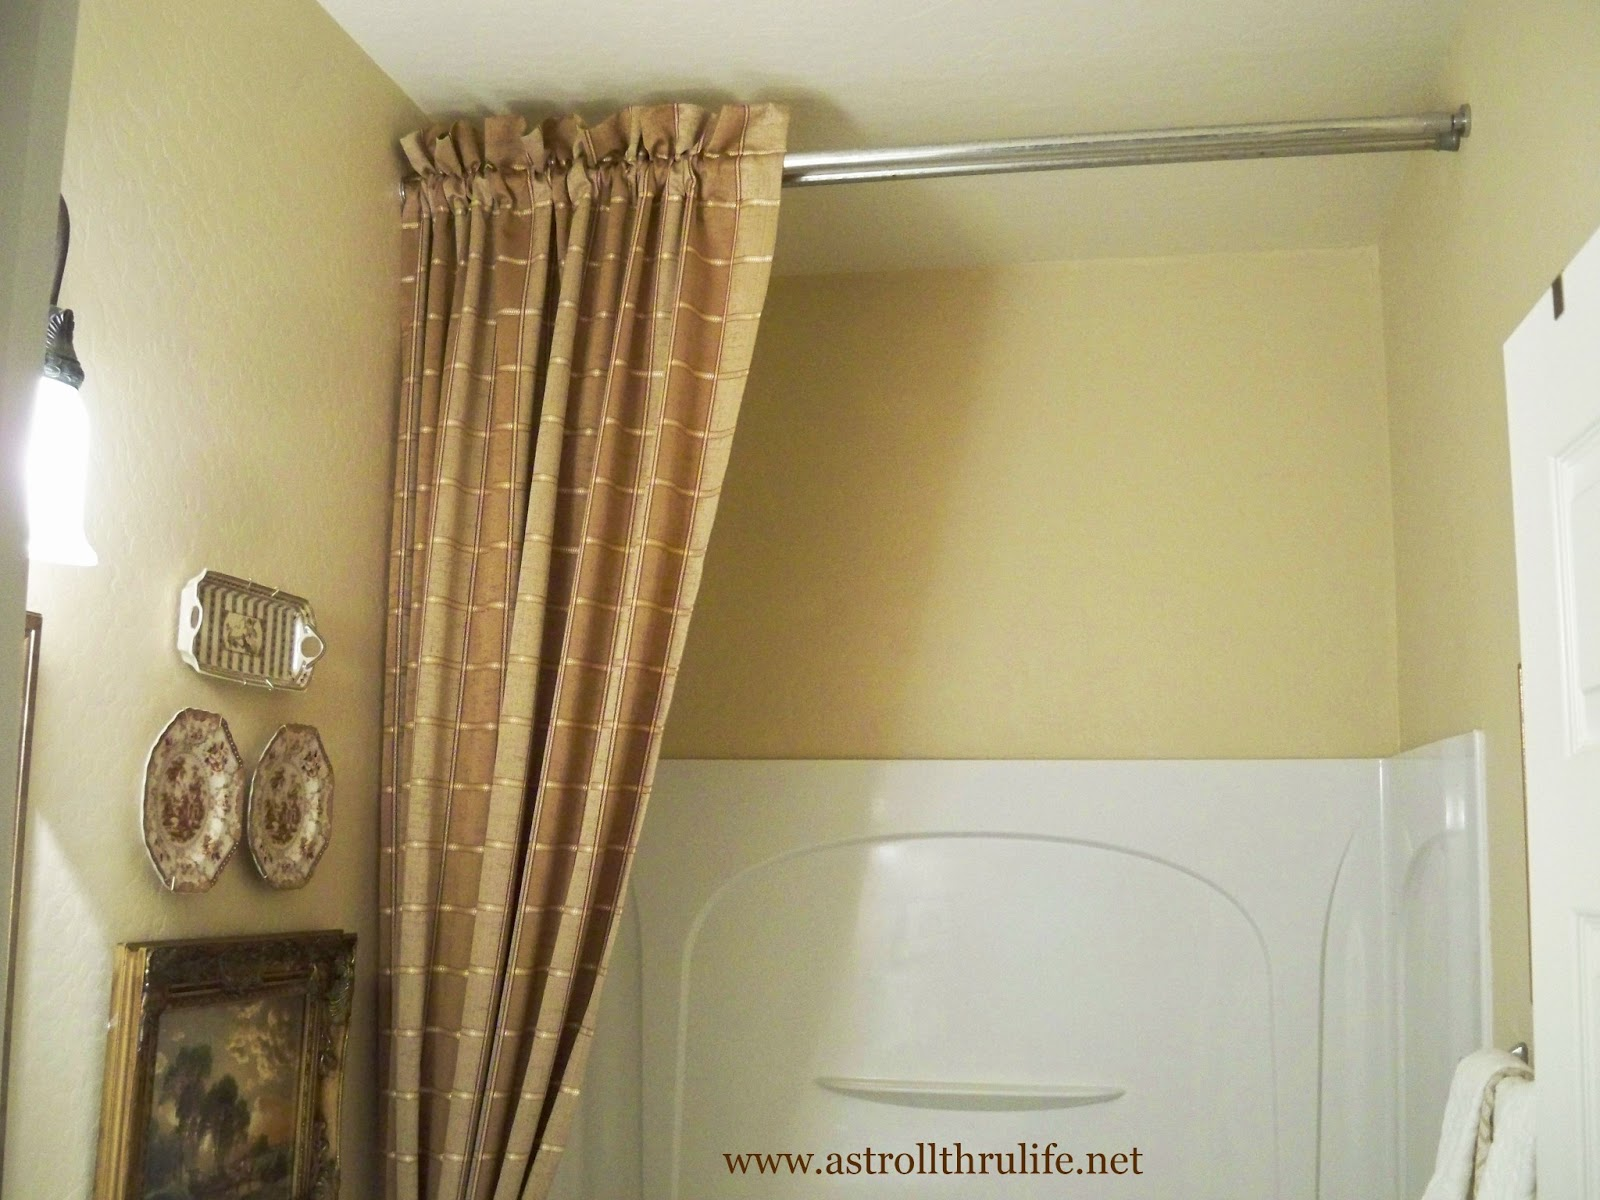 Curtains For 9 Foot Ceilings 8' or 9' Ceilings